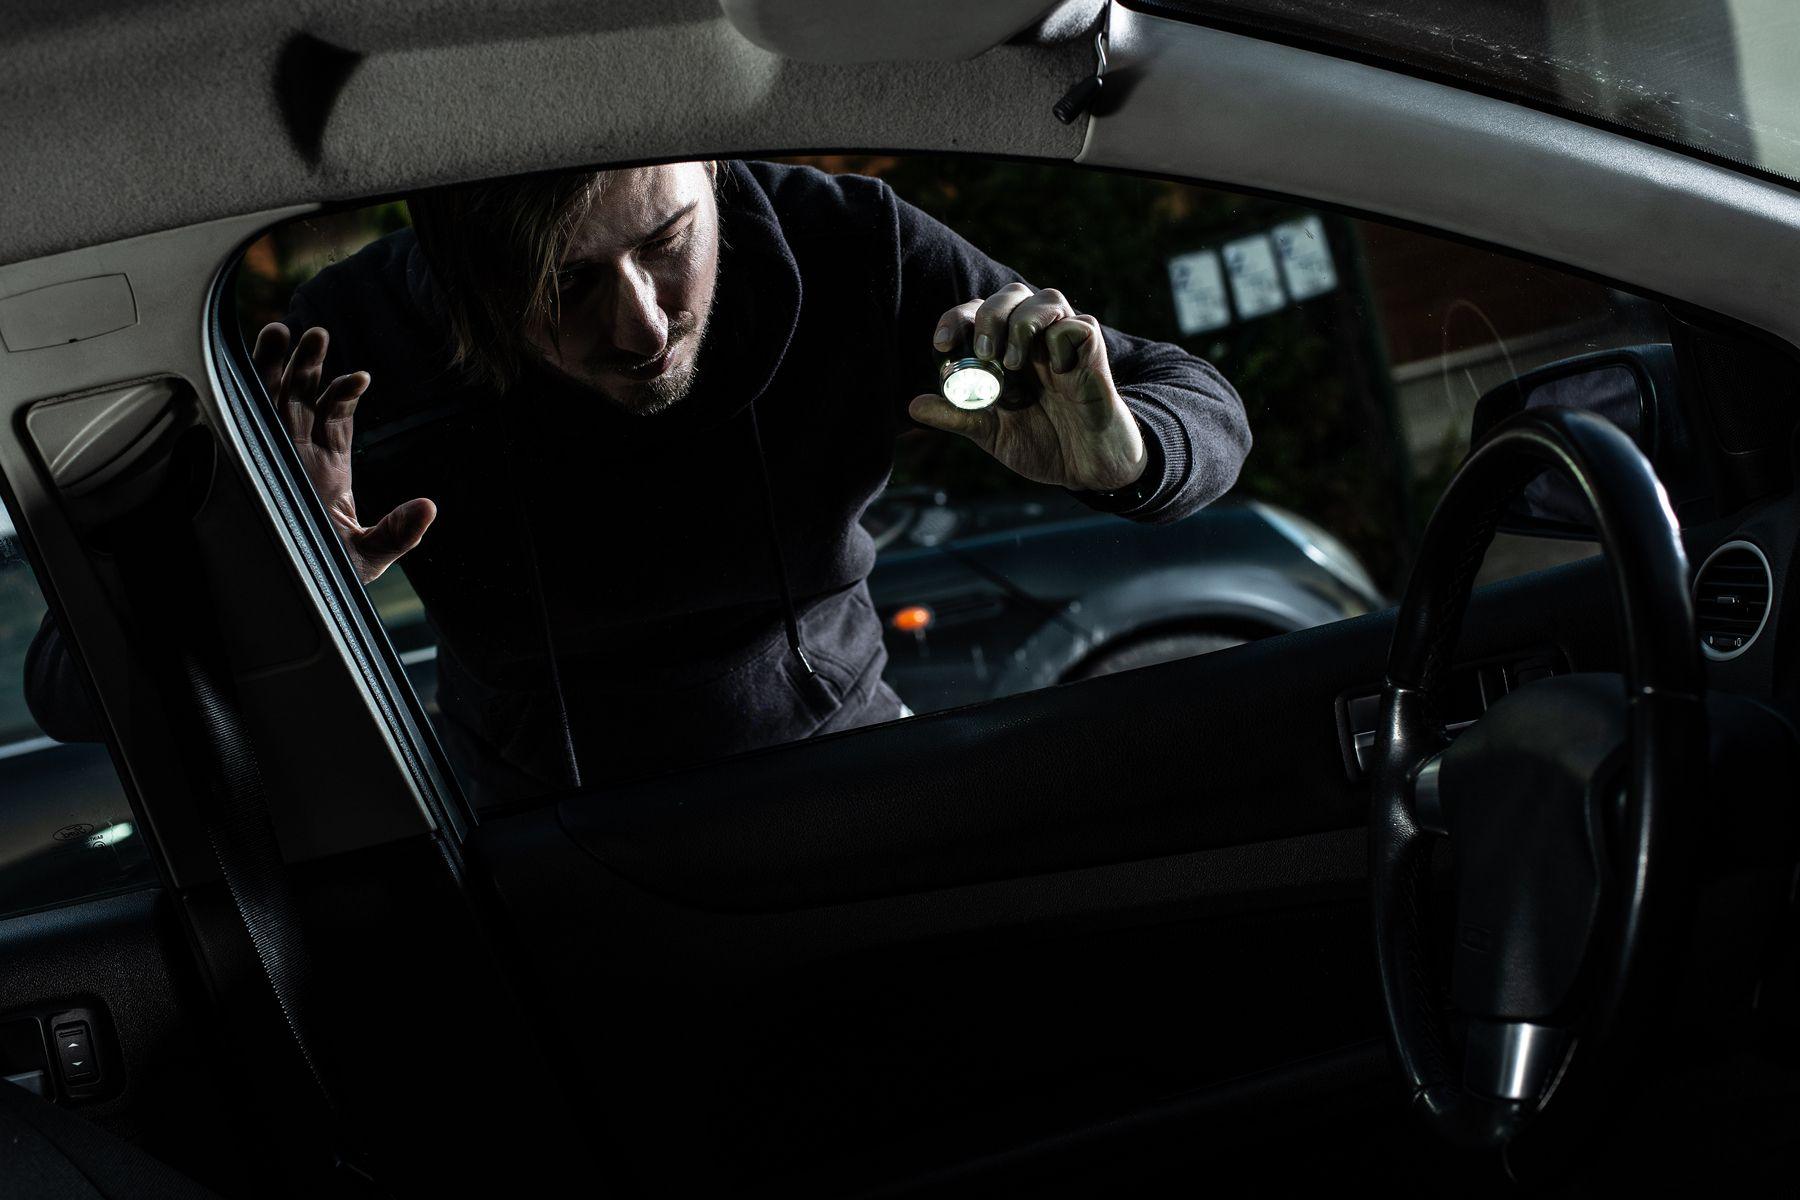 Masked thief in a balaclava looking to car interior